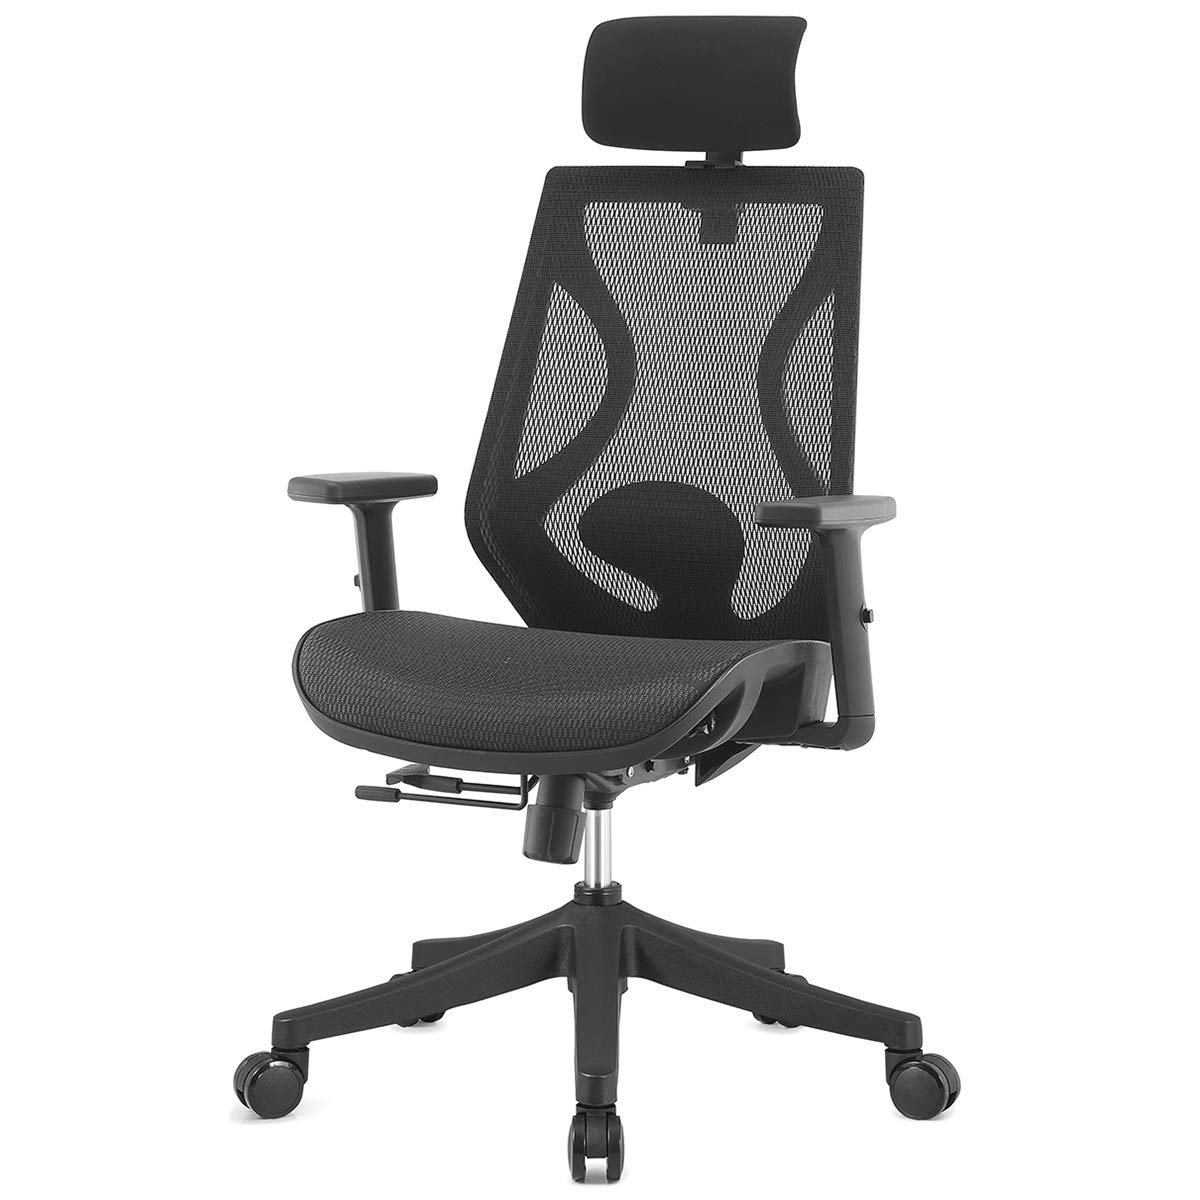 TOPSKY Ergonomic Swivel Task/Executive Chair 2D Arm Slide Seat Adjustable Headrest for Home Office (Black)